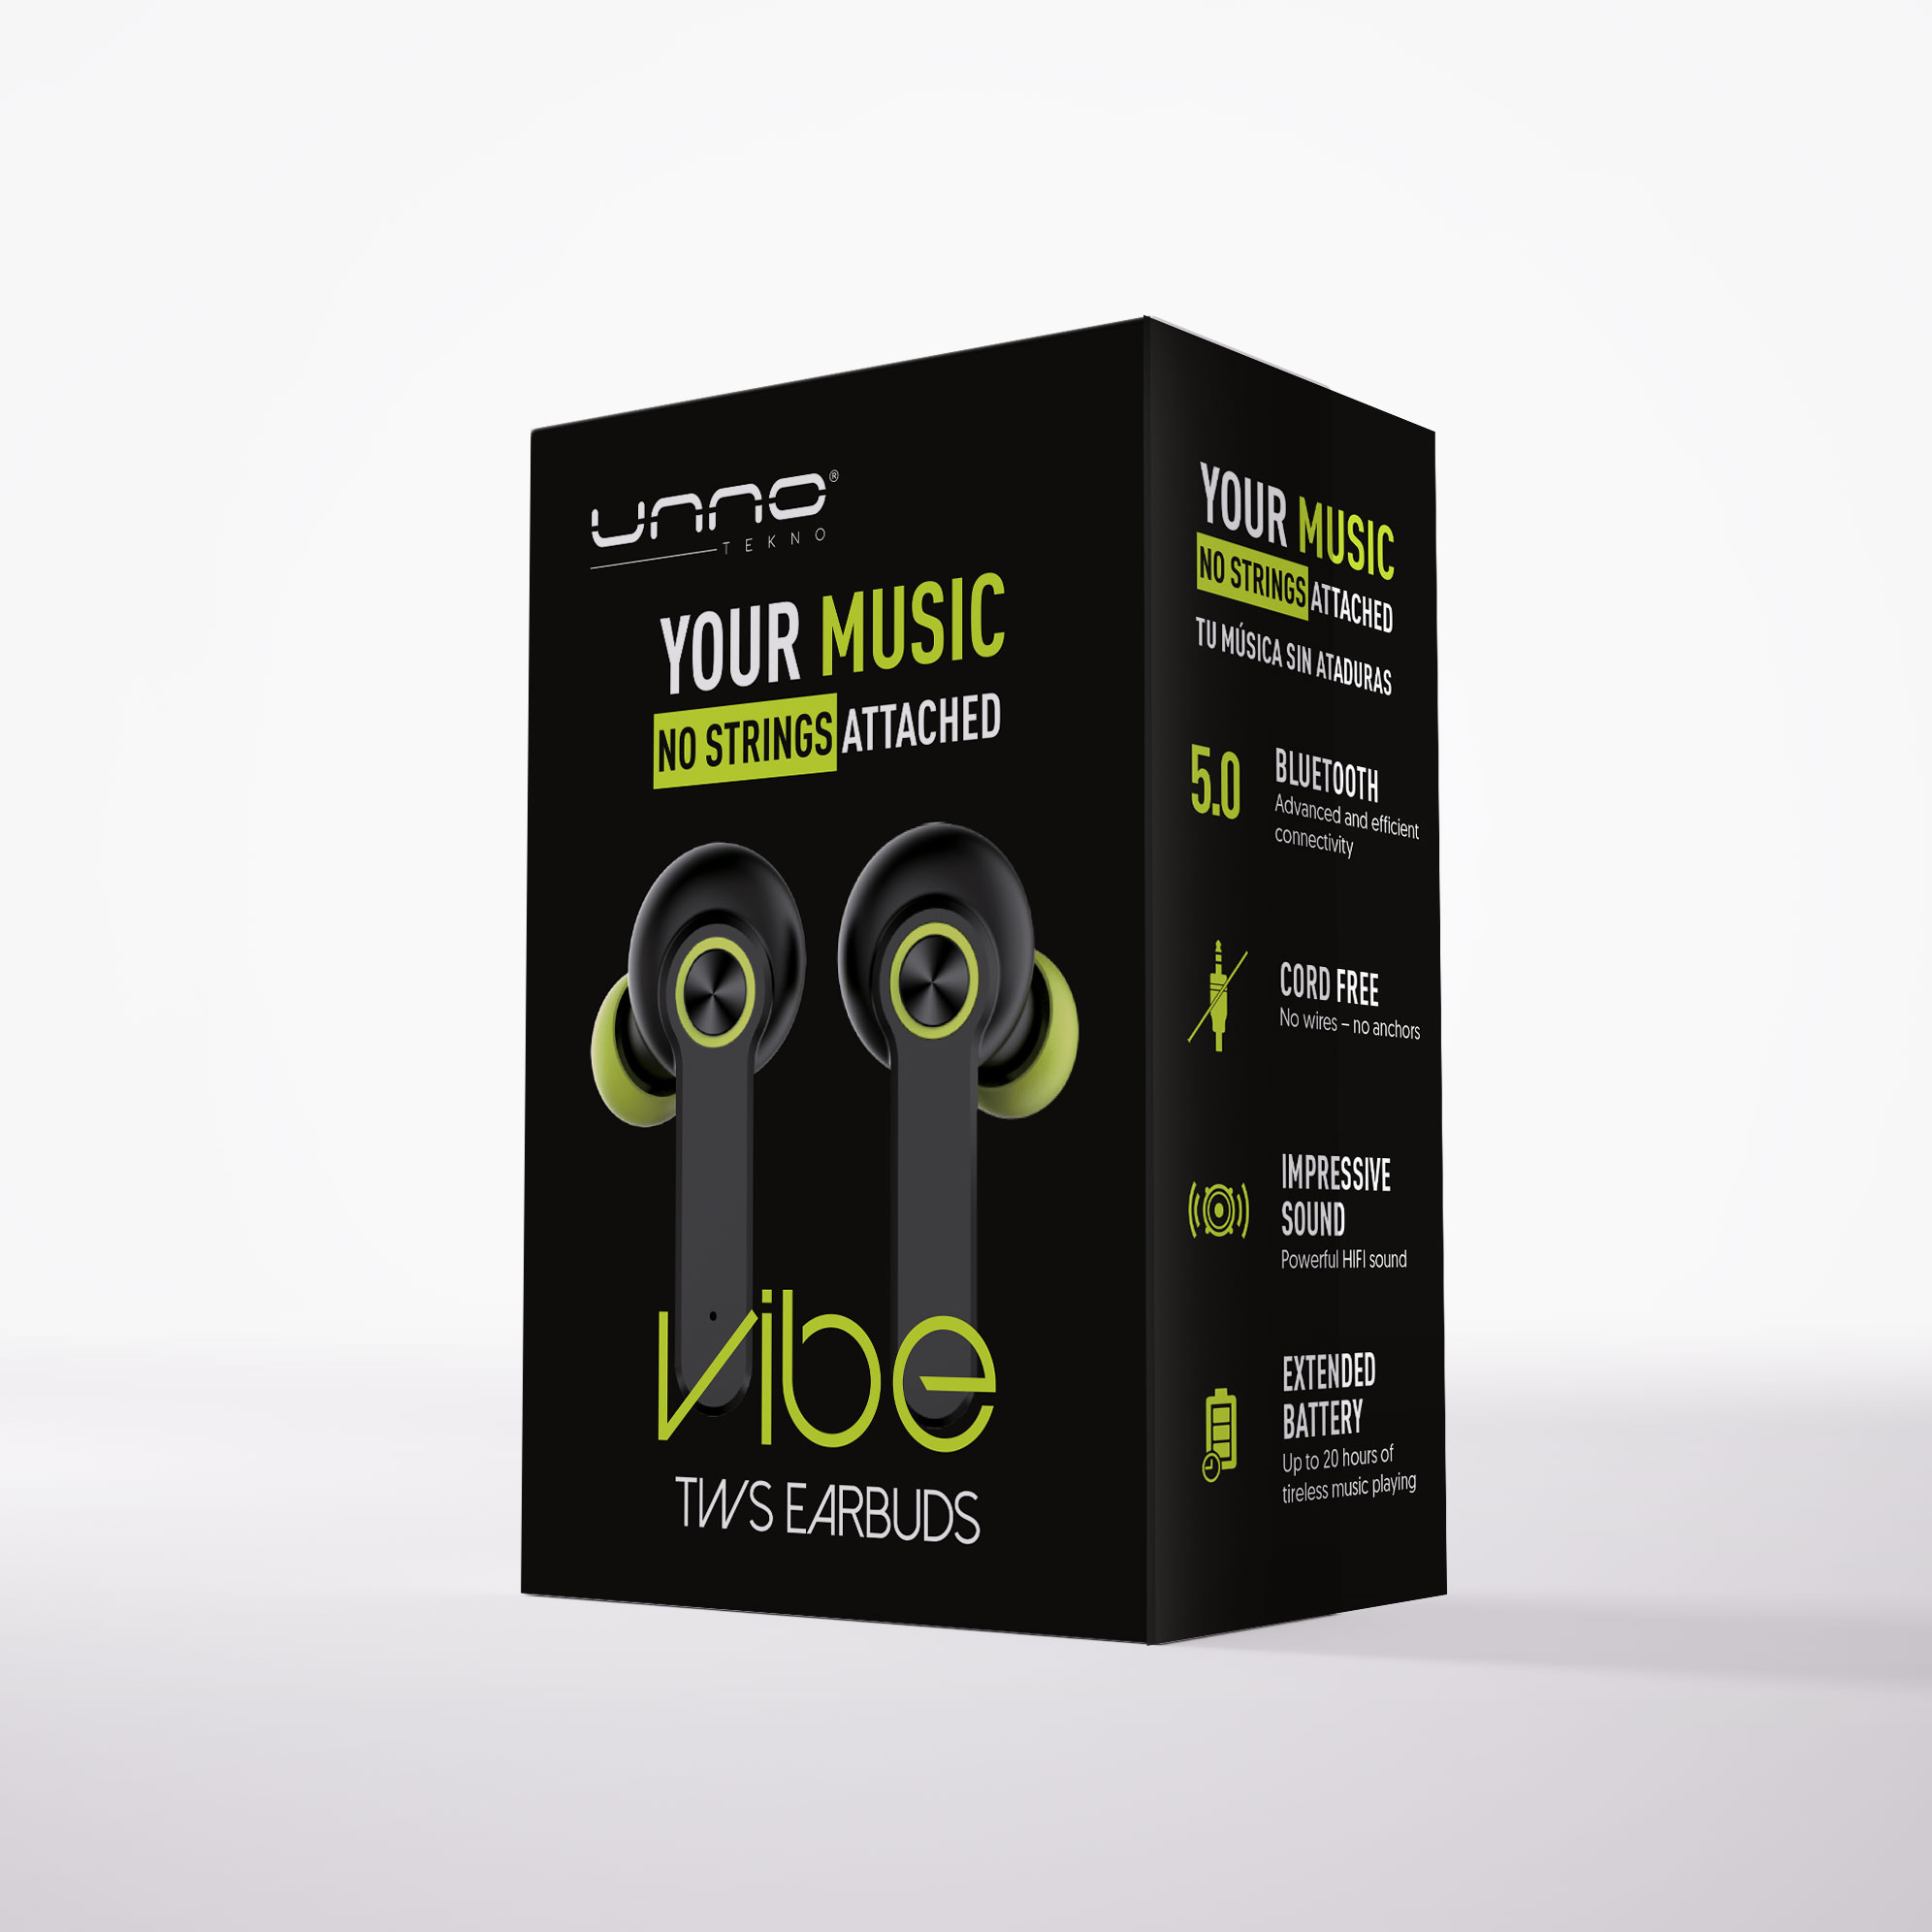 Vibe photography and package design